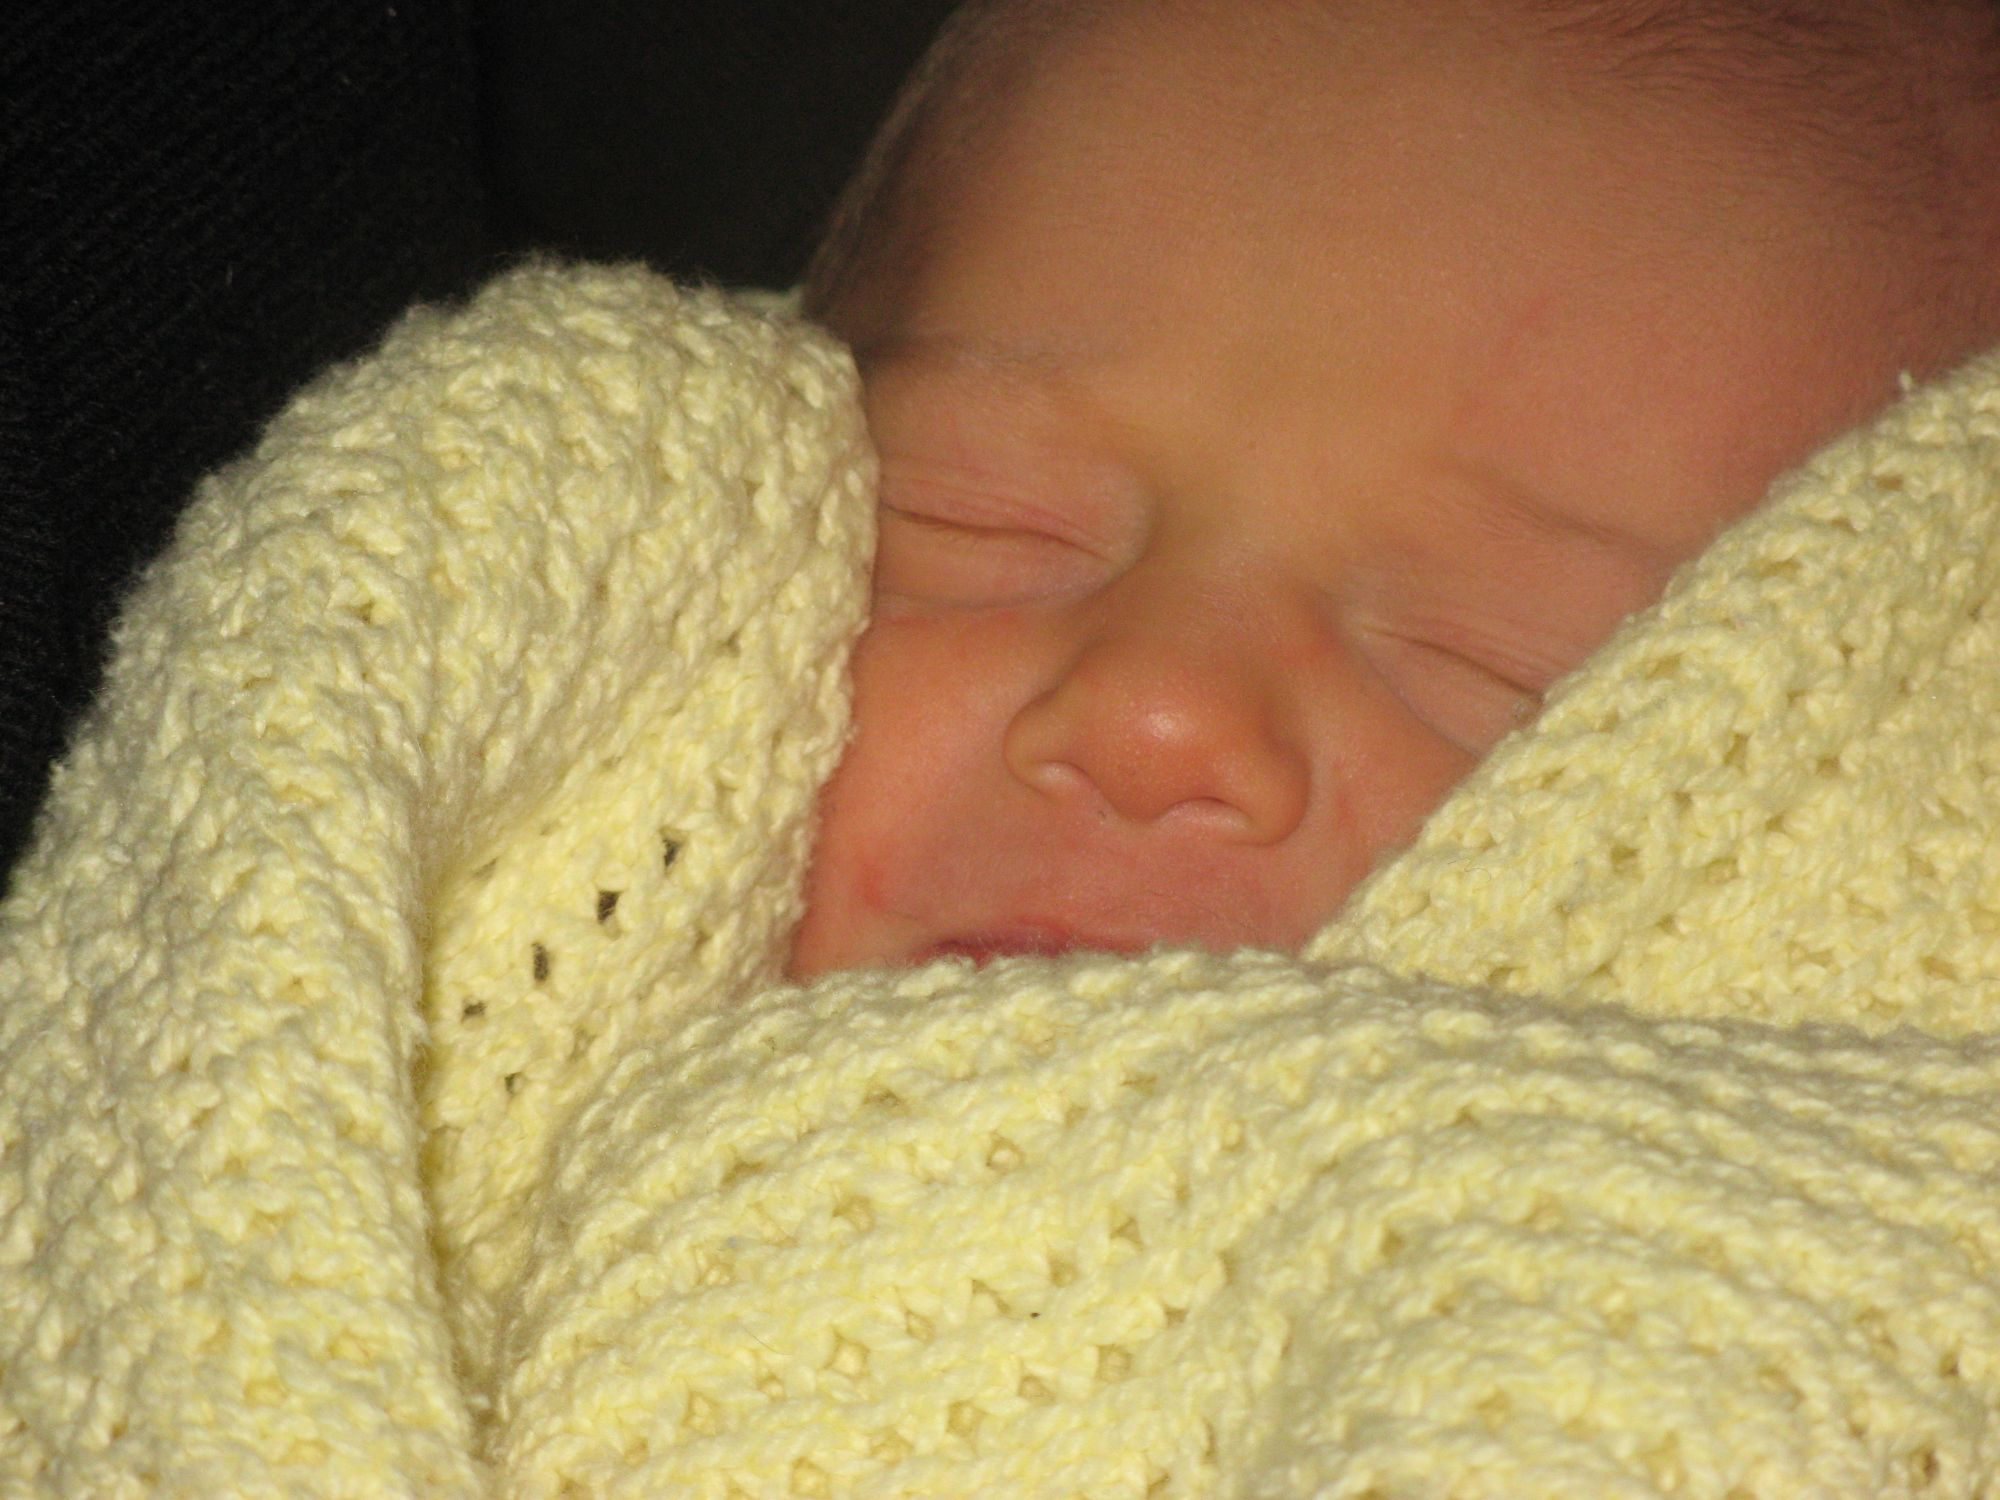 A new baby wrapped in a yellow blanket